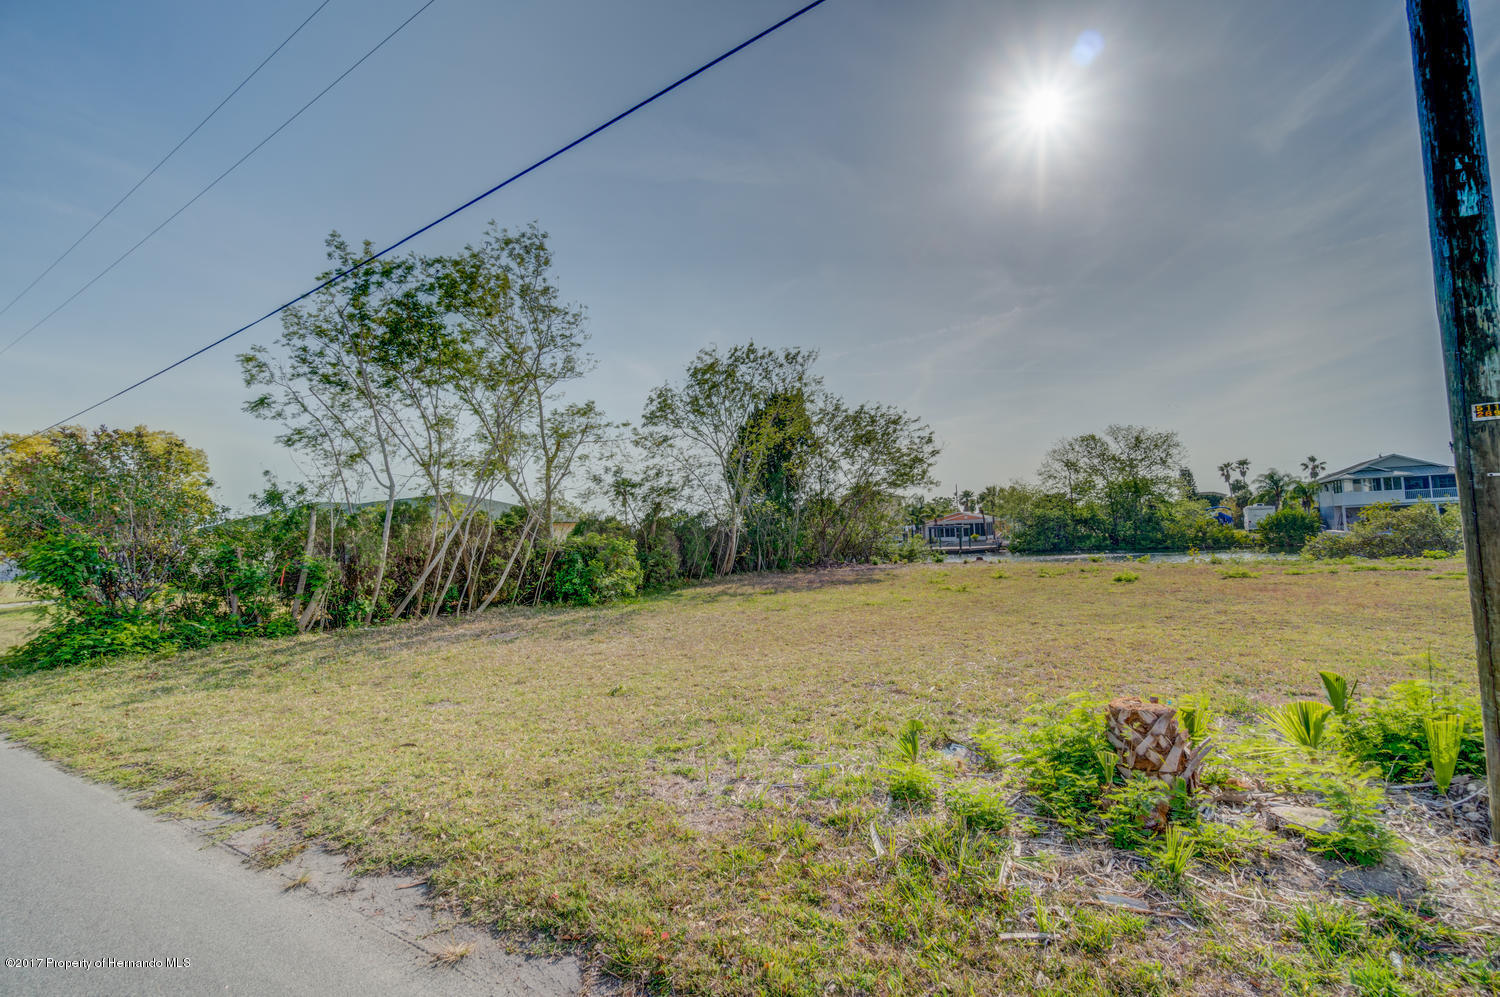 Lot 6 Diaz Ct (25)